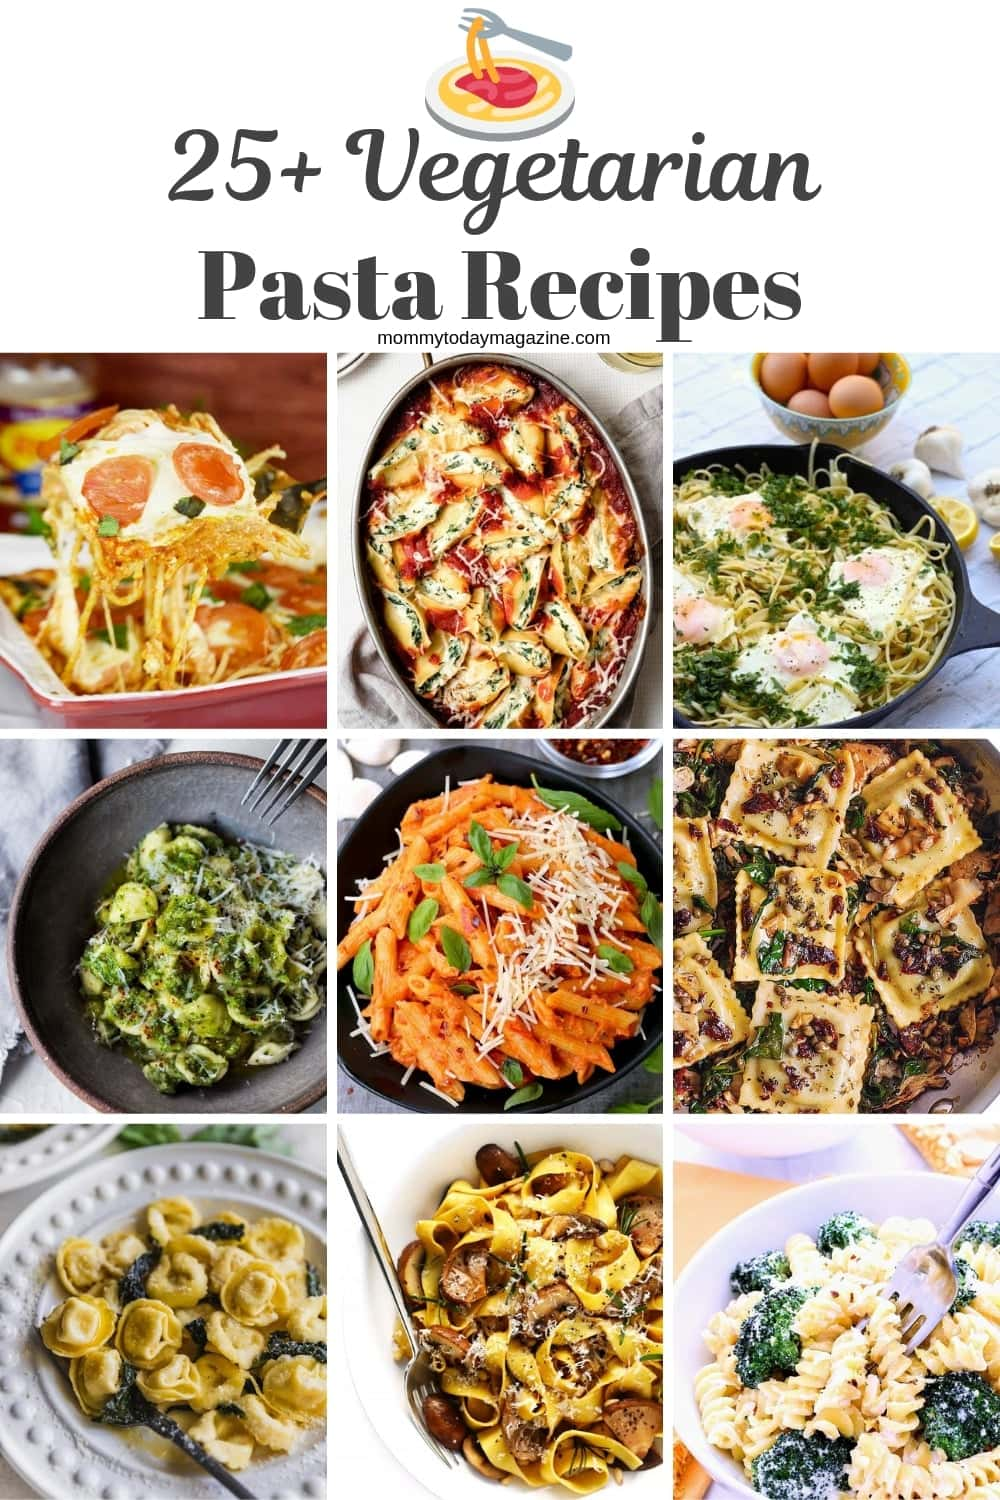 Vegetarian Pasta Recipes - Easy Meat-free Pasta Dishes